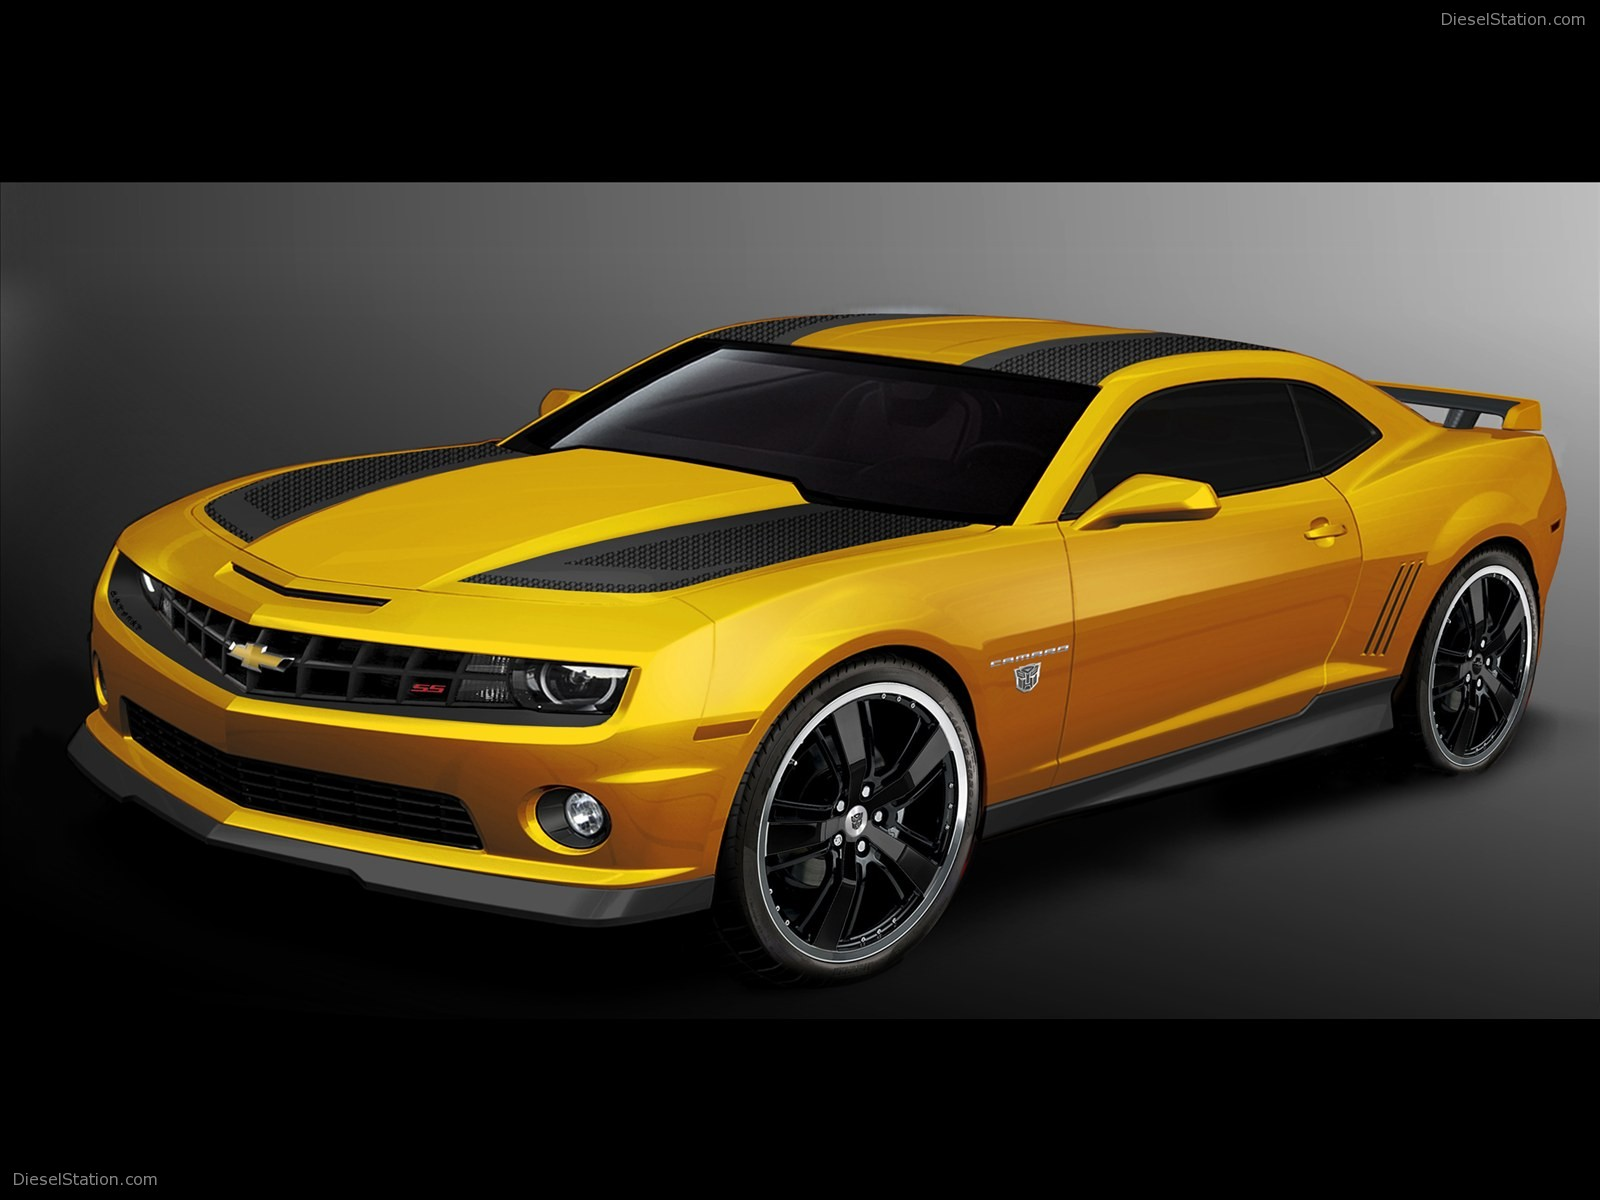 transformers desktop wallpapers chevrolet camaro wallpaper 1600x1200